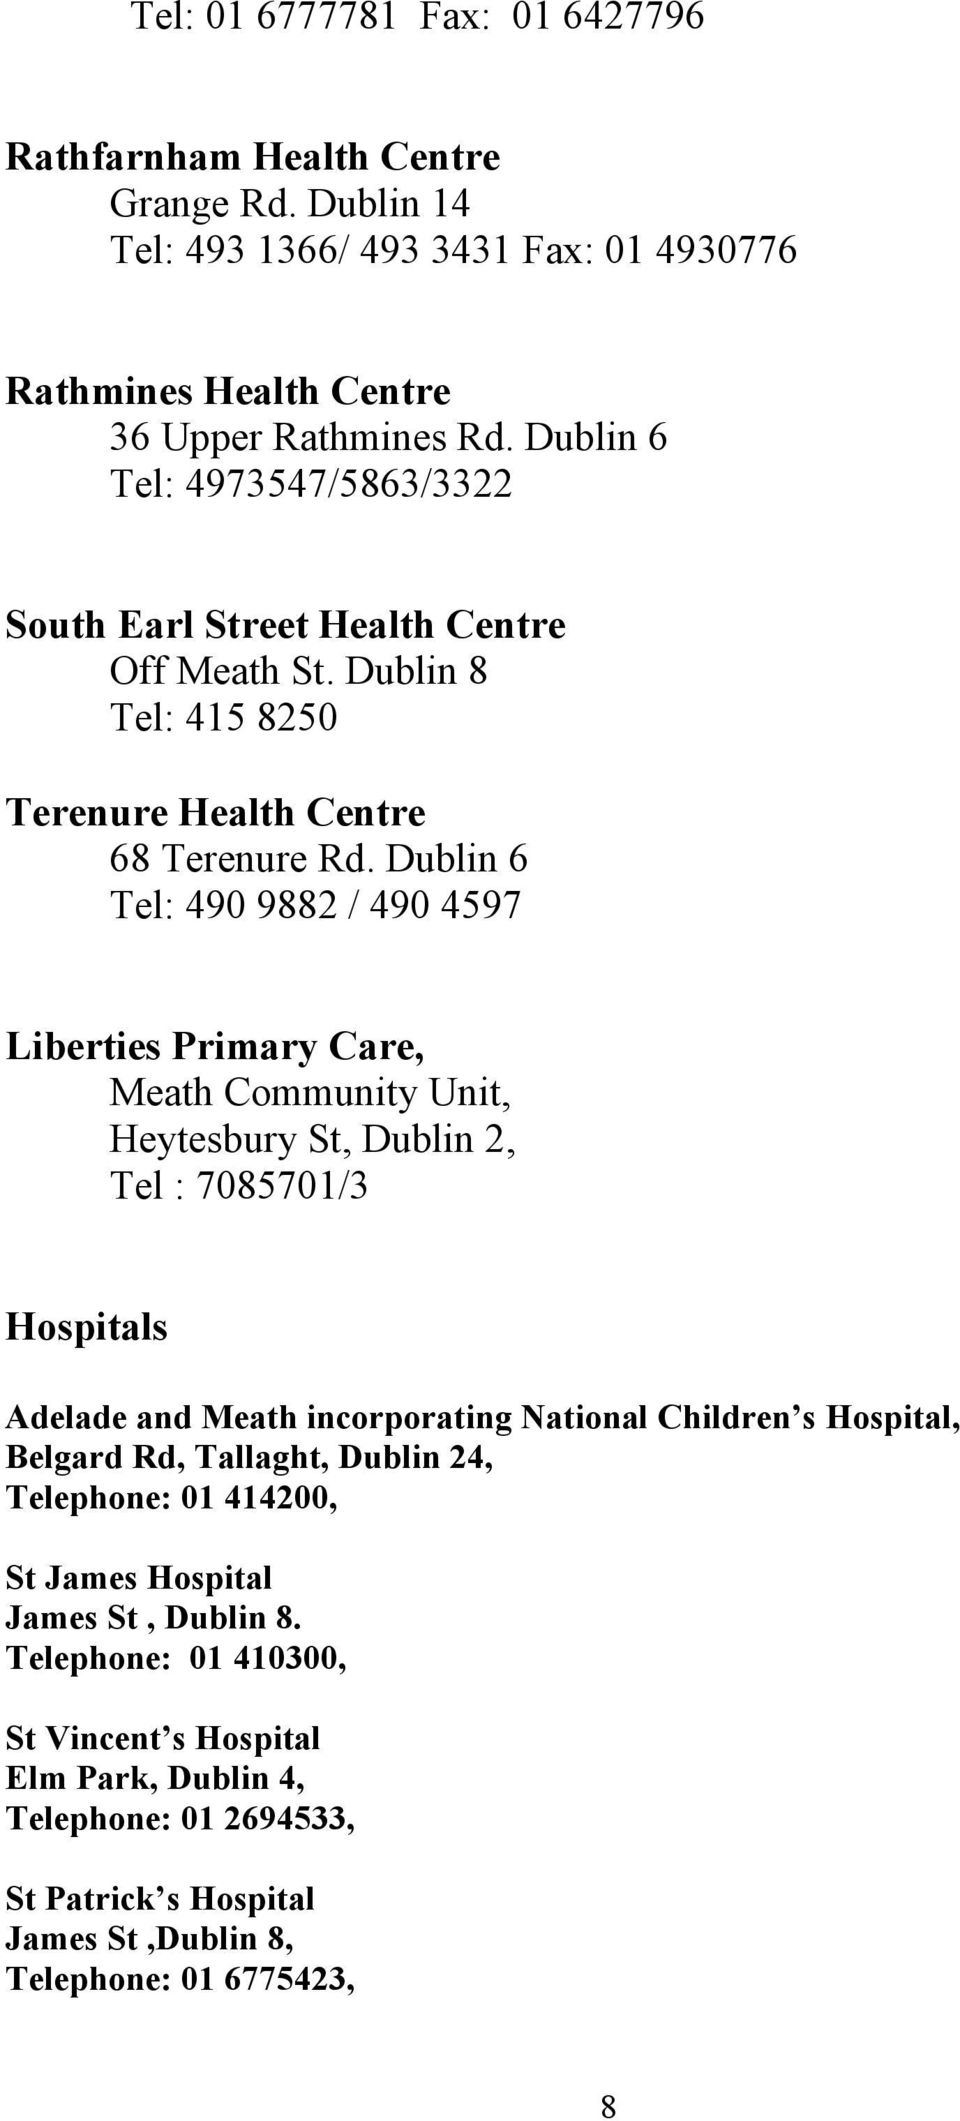 Dublin 6 Tel: 490 9882 / 490 4597 Liberties Primary Care, Meath Community Unit, Heytesbury St, Dublin 2, Tel : 7085701/3 Hospitals Adelade and Meath incorporating National Children s